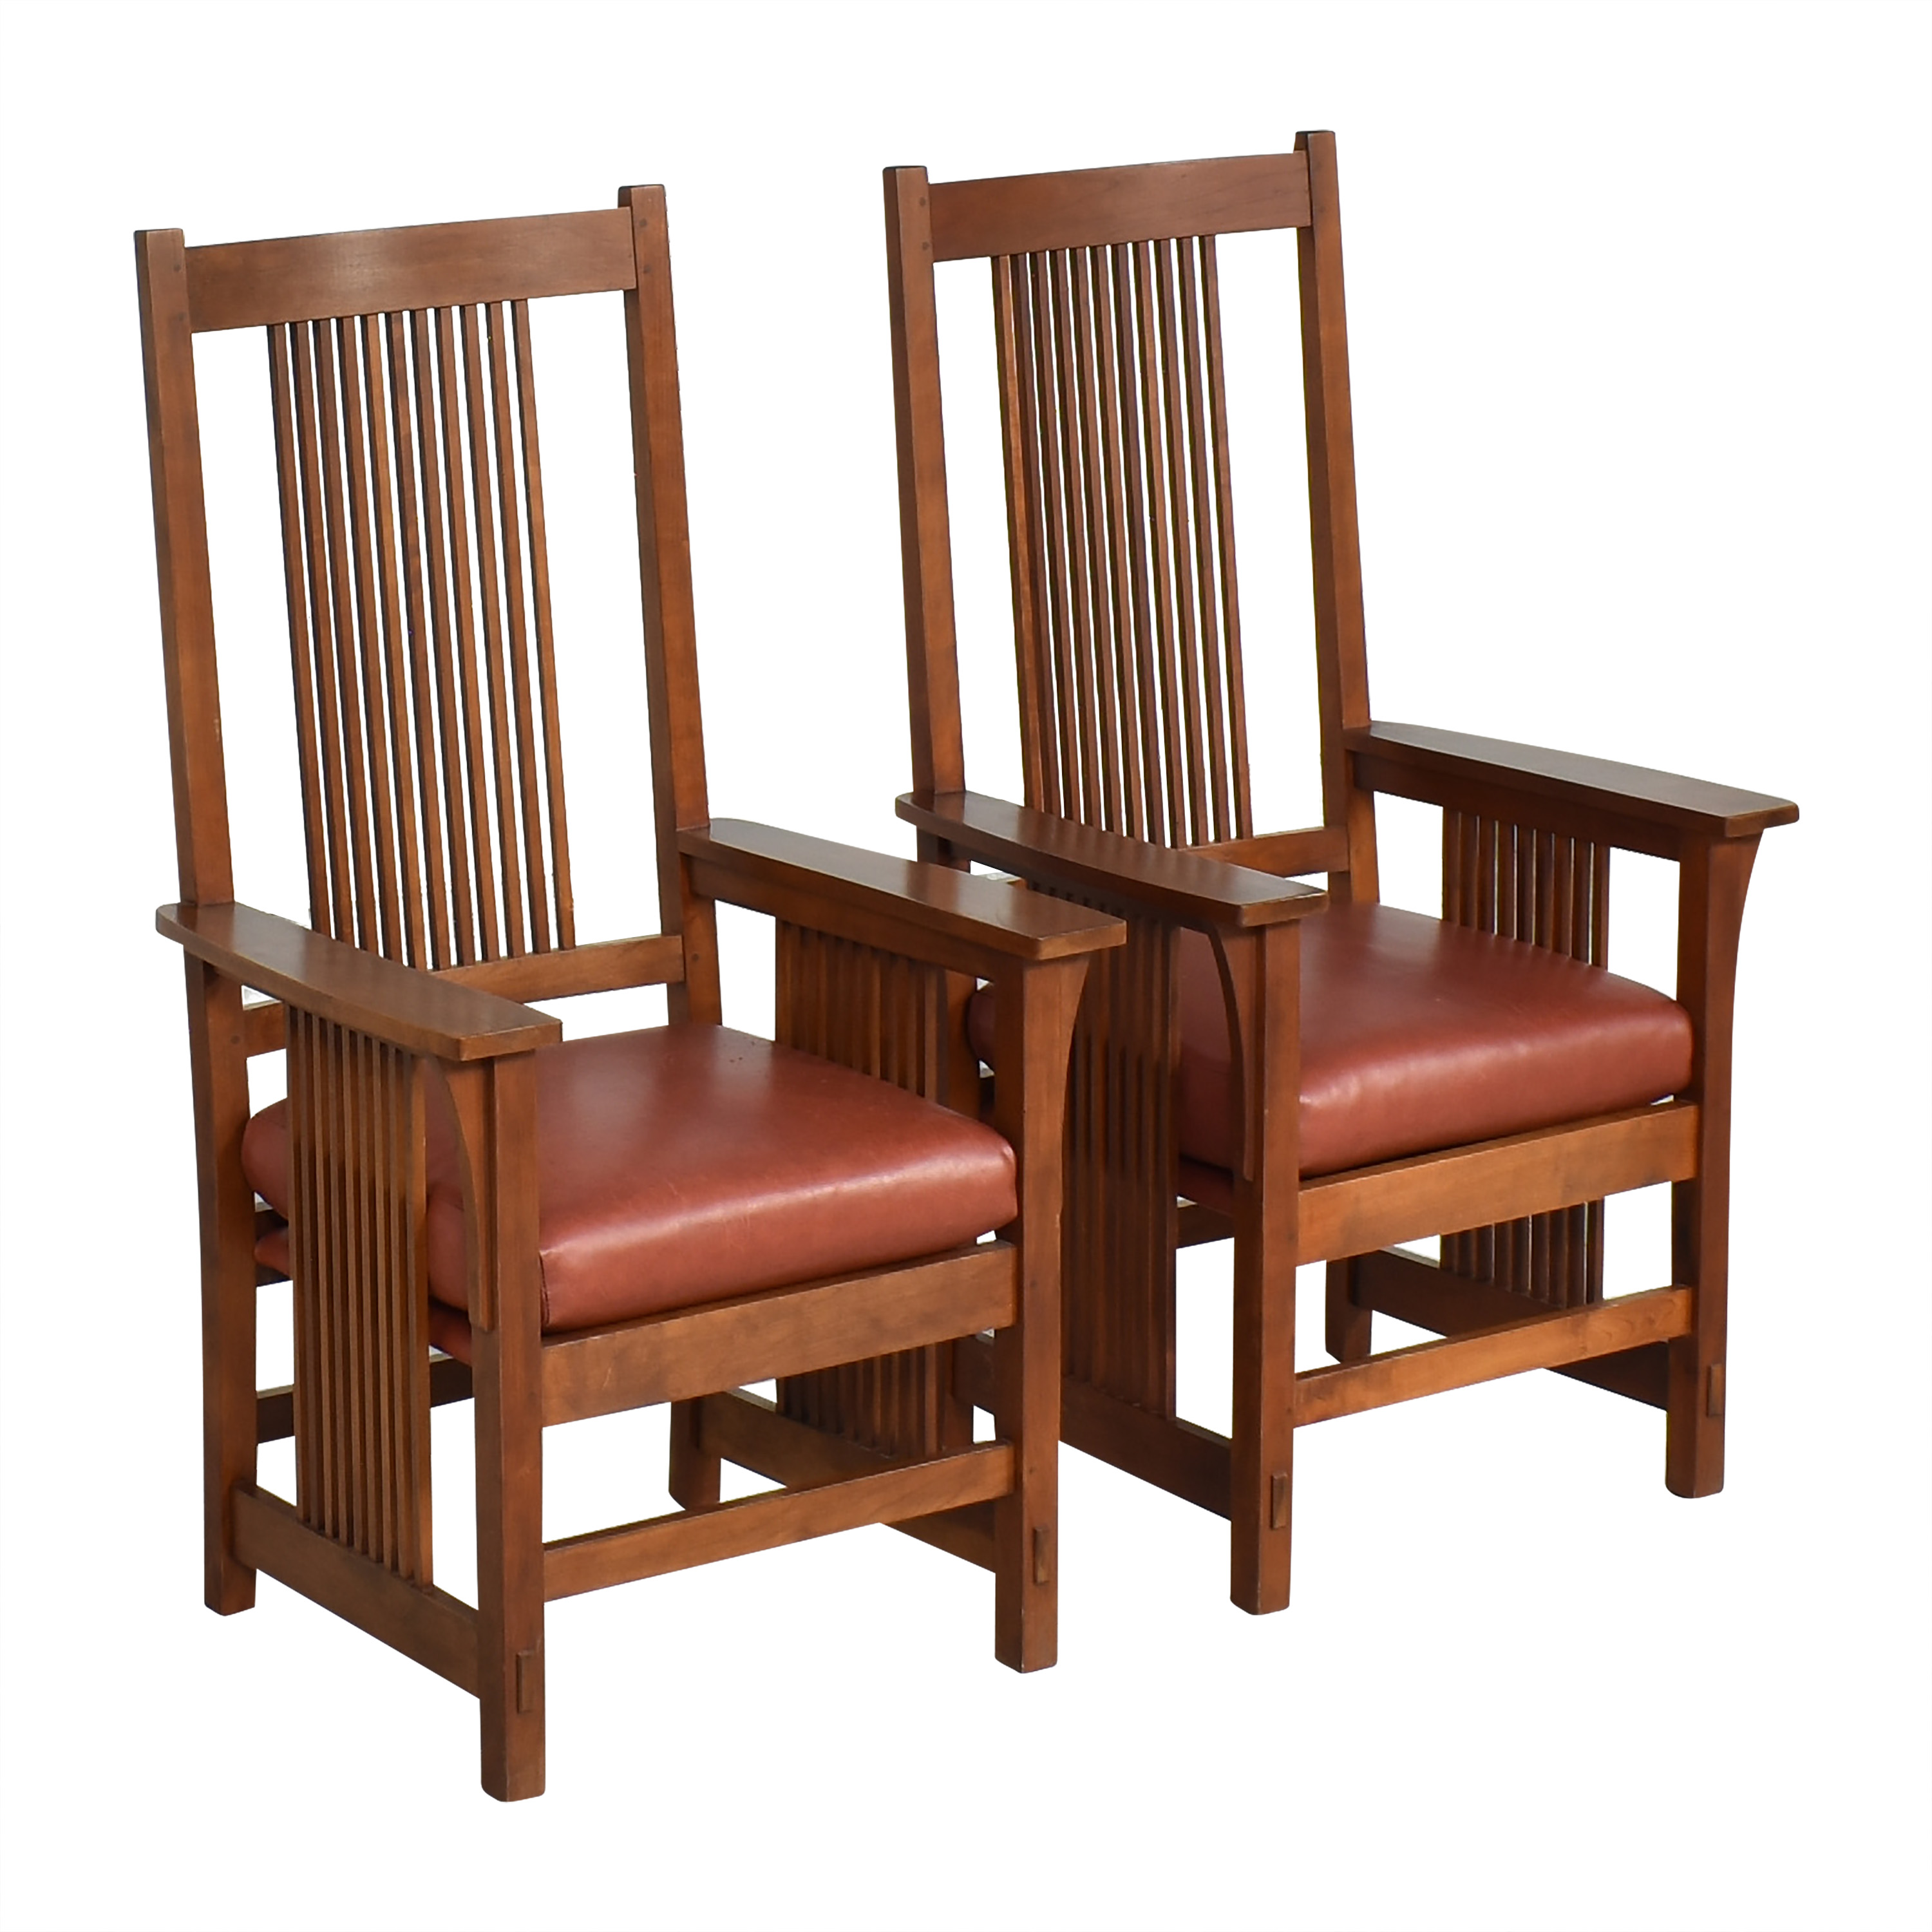 Stickley Furniture Stickley Spindle Dining Arm Chairs price